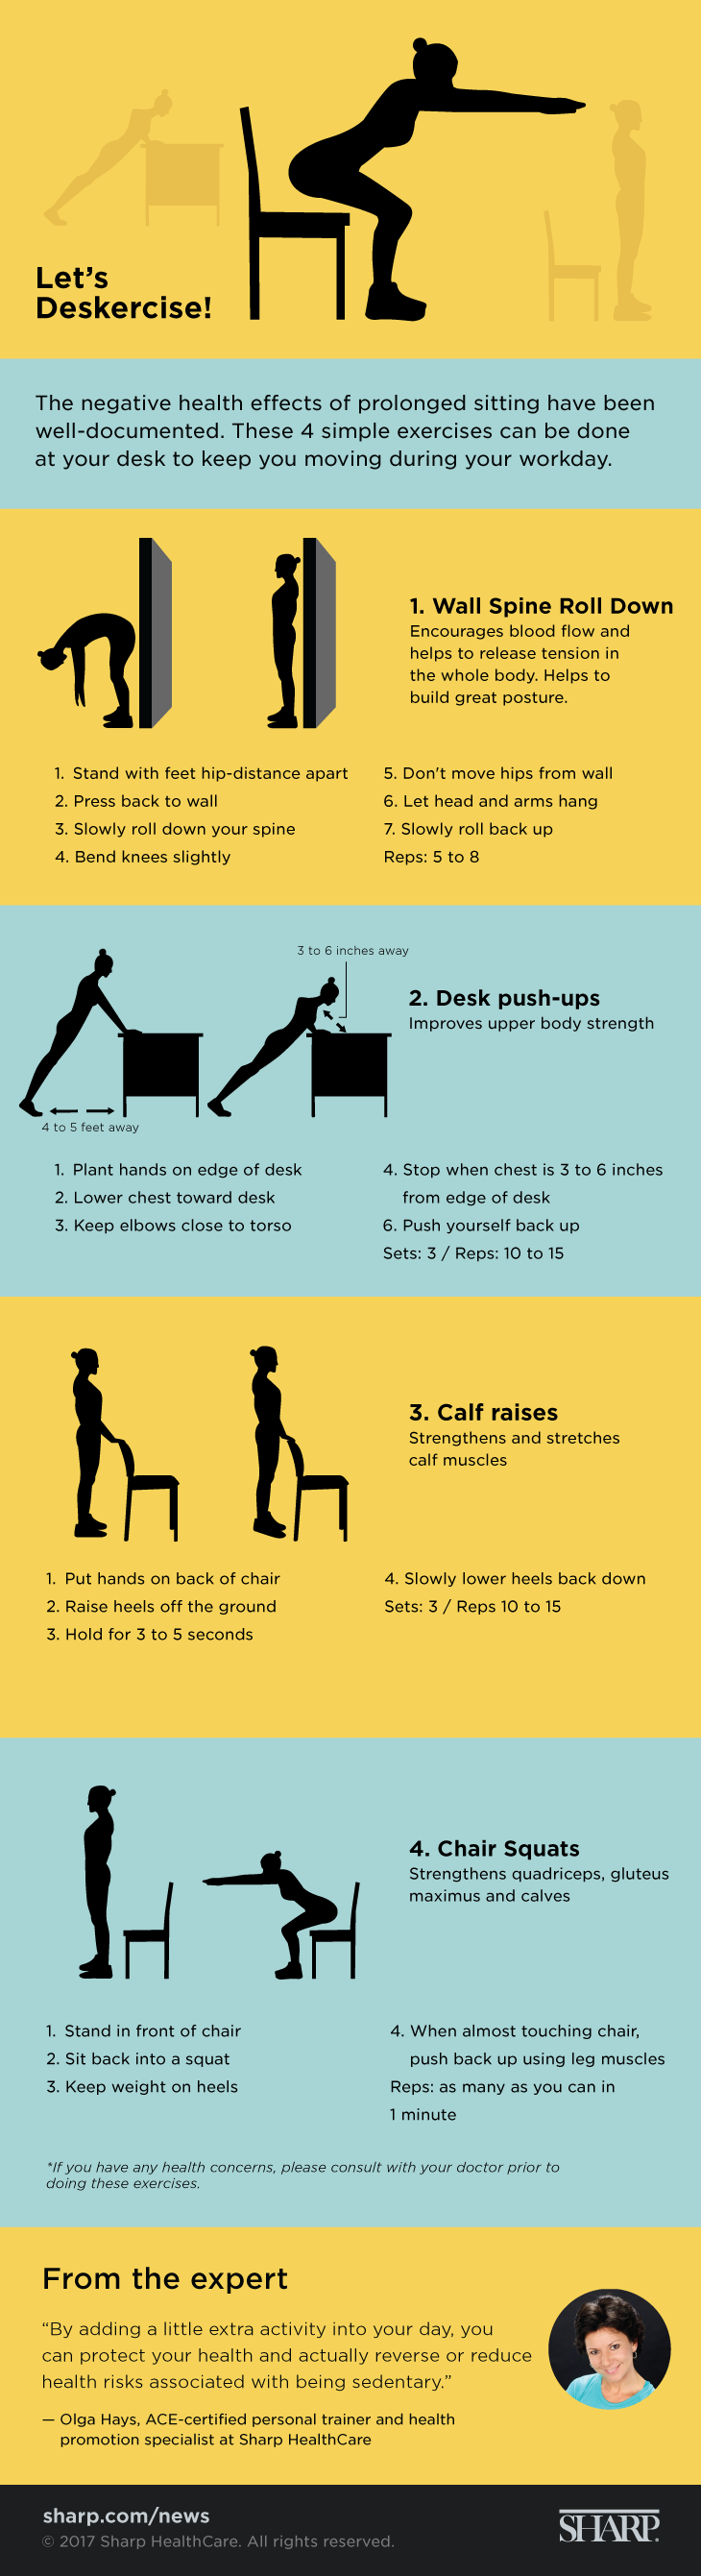 Let's deskercise